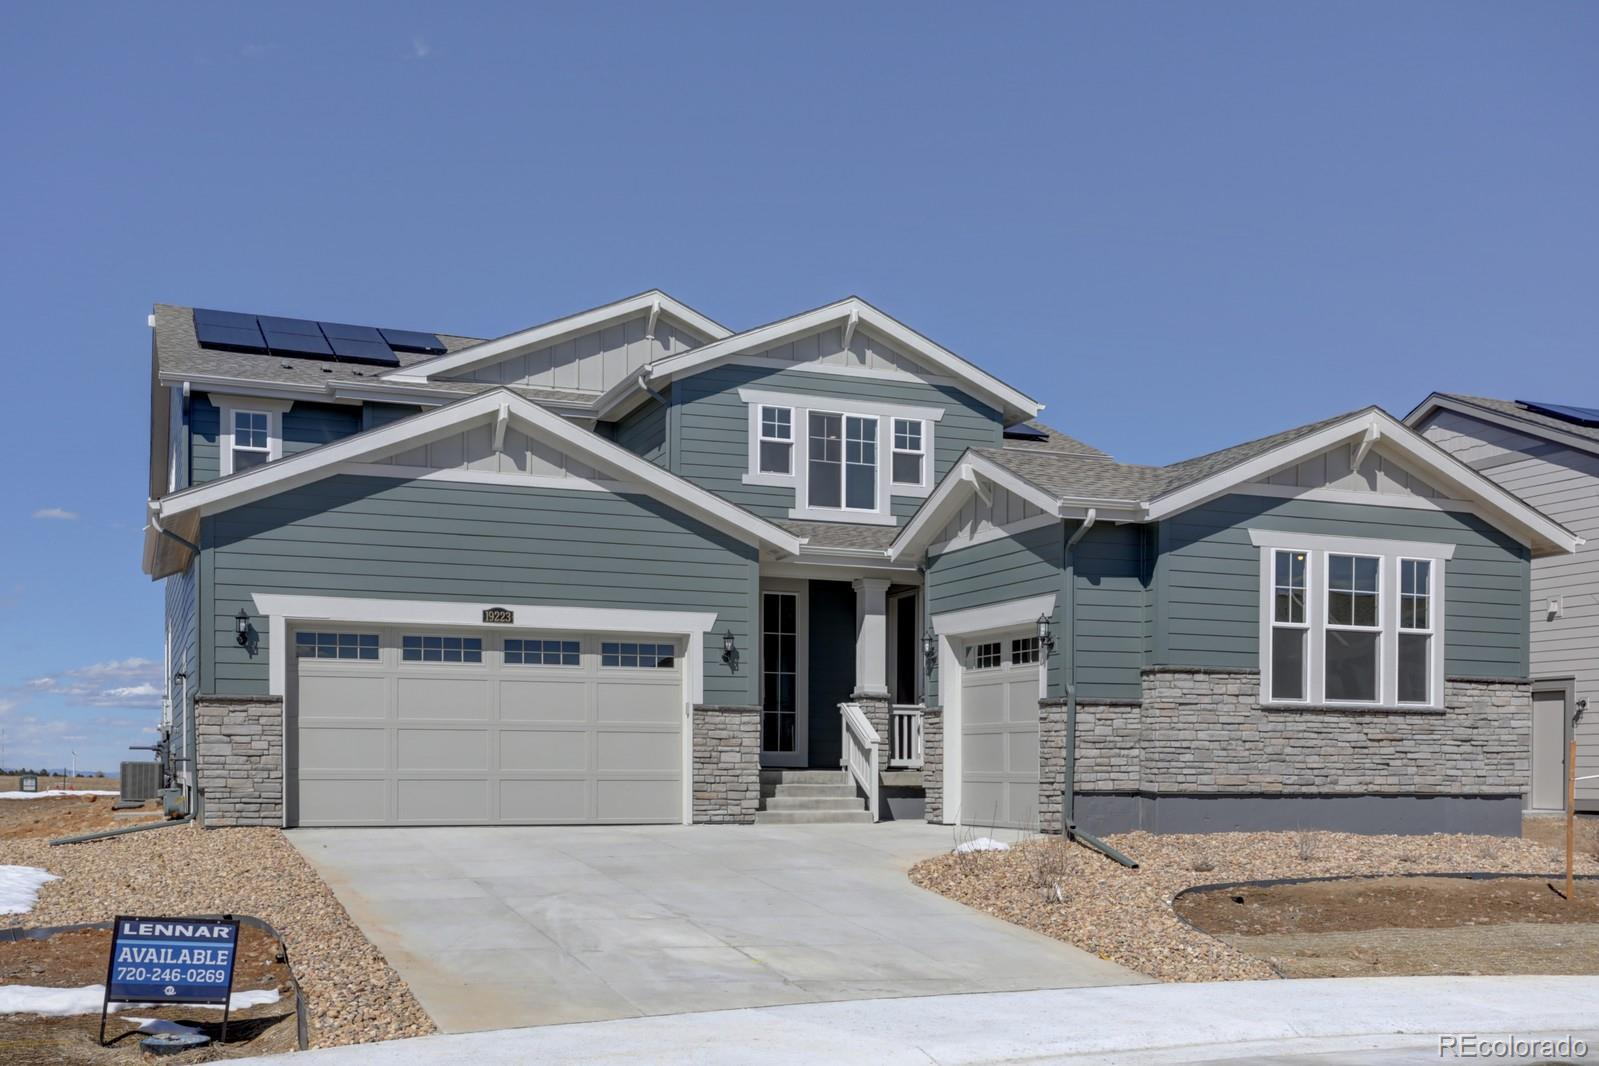 19223 W 95th Lane, Arvada, CO 80007 - Arvada, CO real estate listing